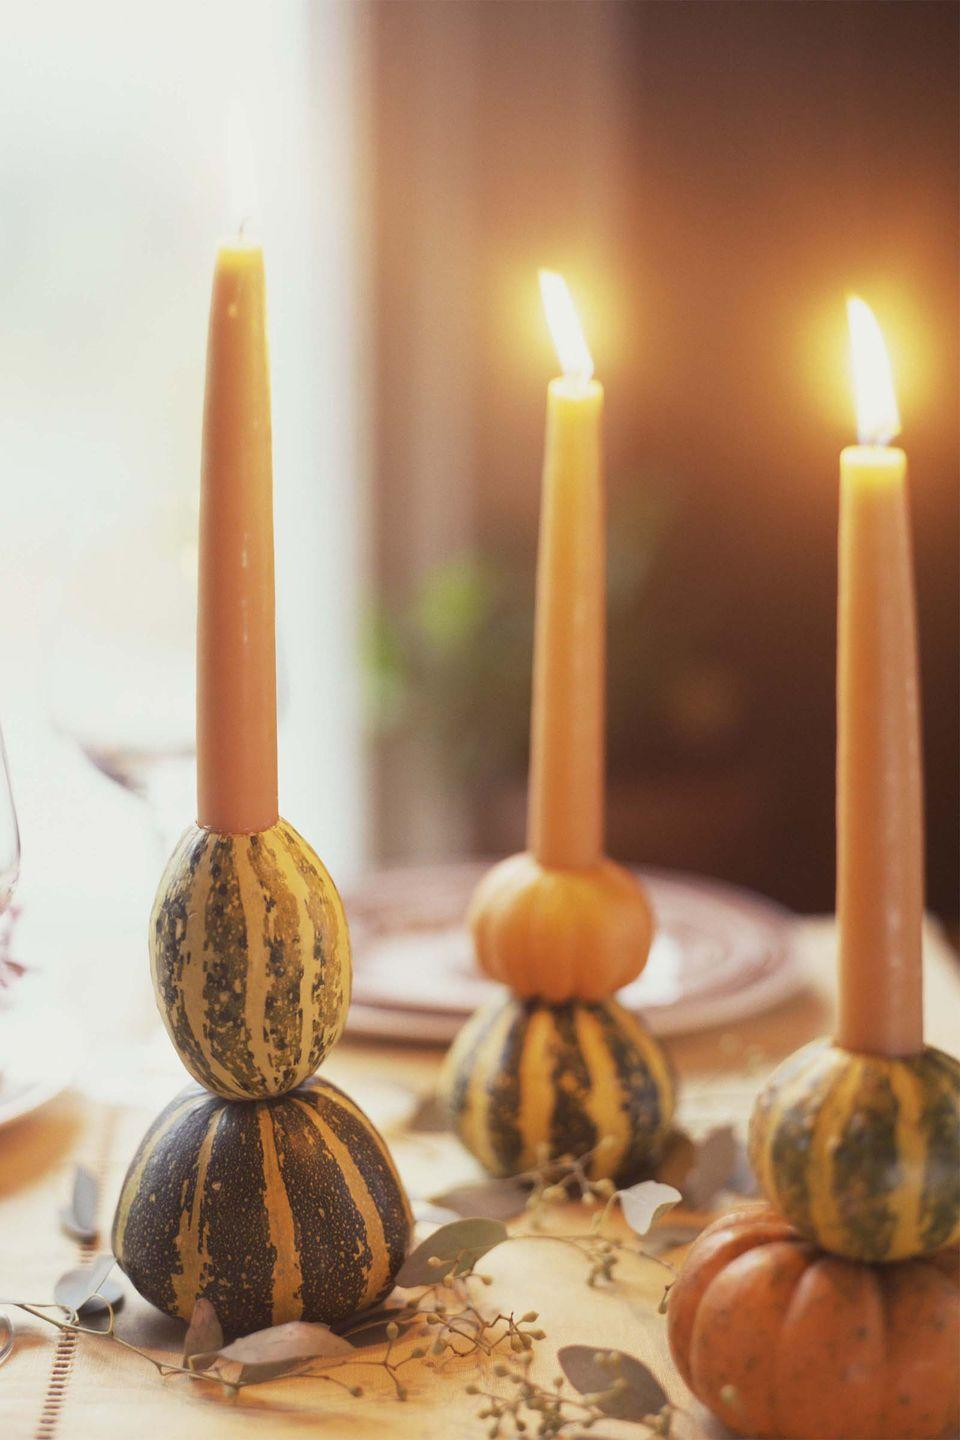 """<p>Hollow out the middle of a couple miniature gourds and pumpkins, then slide in a taper candle for a seasonal DIY candlestick.</p><p><a class=""""link rapid-noclick-resp"""" href=""""https://www.amazon.com/Higlow-Dripless-Candles-Wedding-Decoration/dp/B01MXDKJ5F?tag=syn-yahoo-20&ascsubtag=%5Bartid%7C10050.g.1371%5Bsrc%7Cyahoo-us"""" rel=""""nofollow noopener"""" target=""""_blank"""" data-ylk=""""slk:SHOP CANDLES"""">SHOP CANDLES</a></p>"""